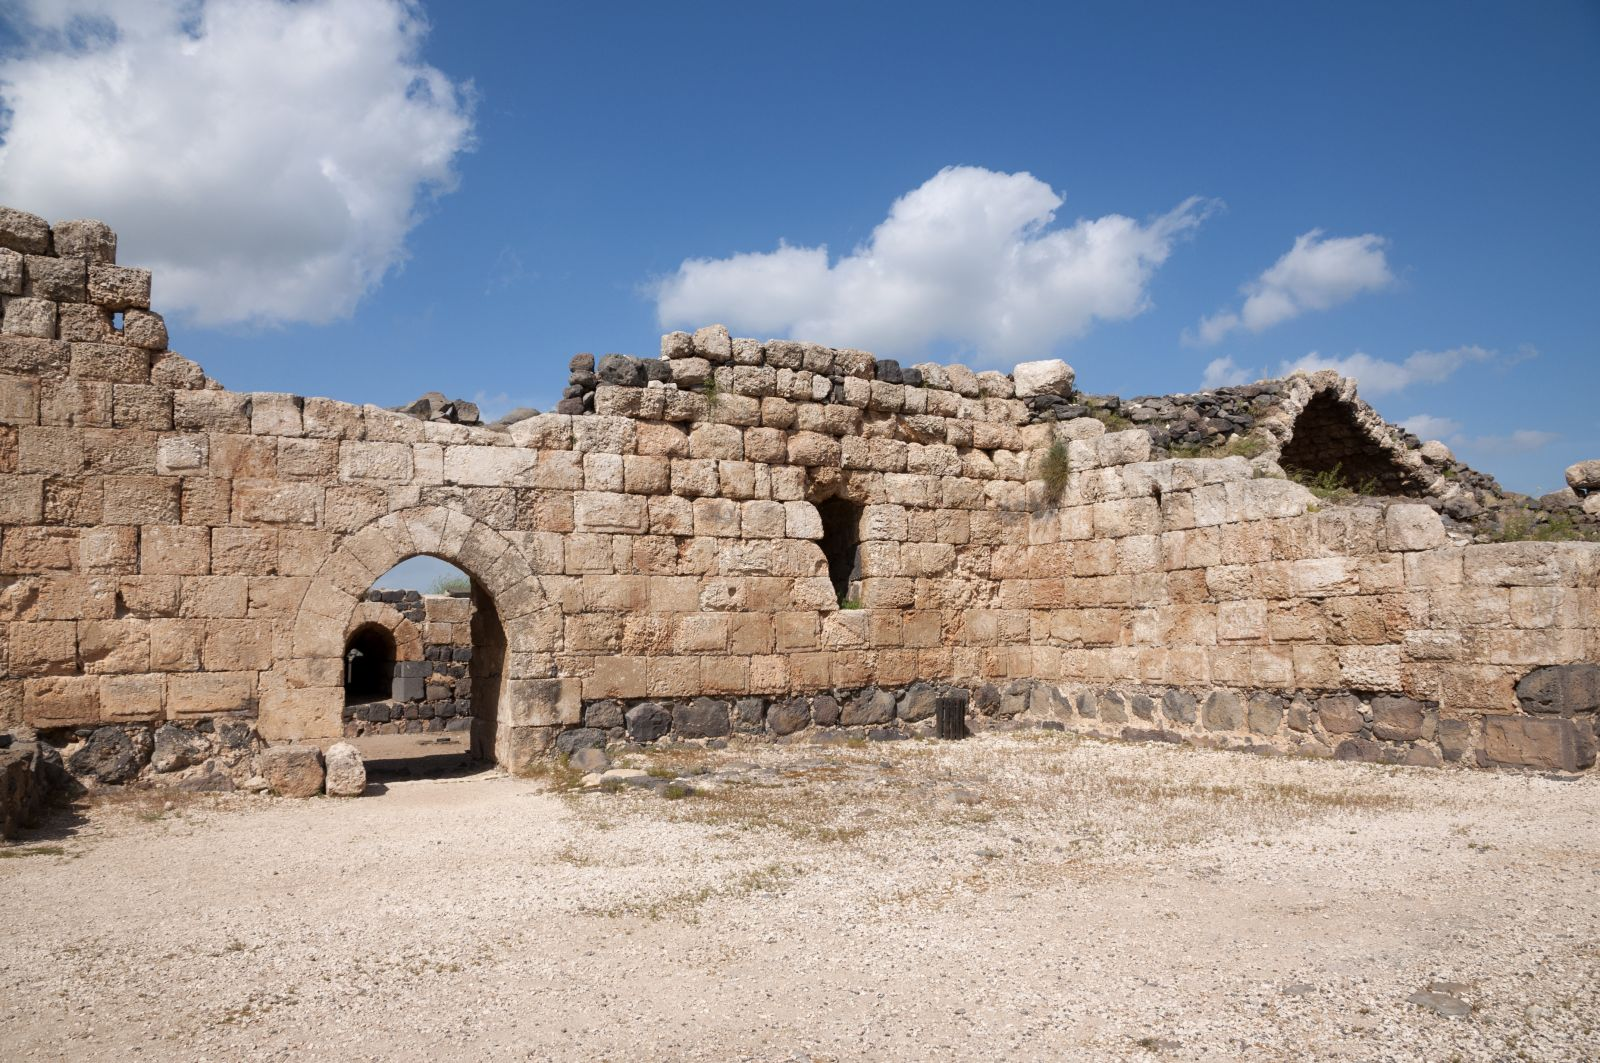 Belvoir Fortress in northern Israel. Image via Shutterstock.com